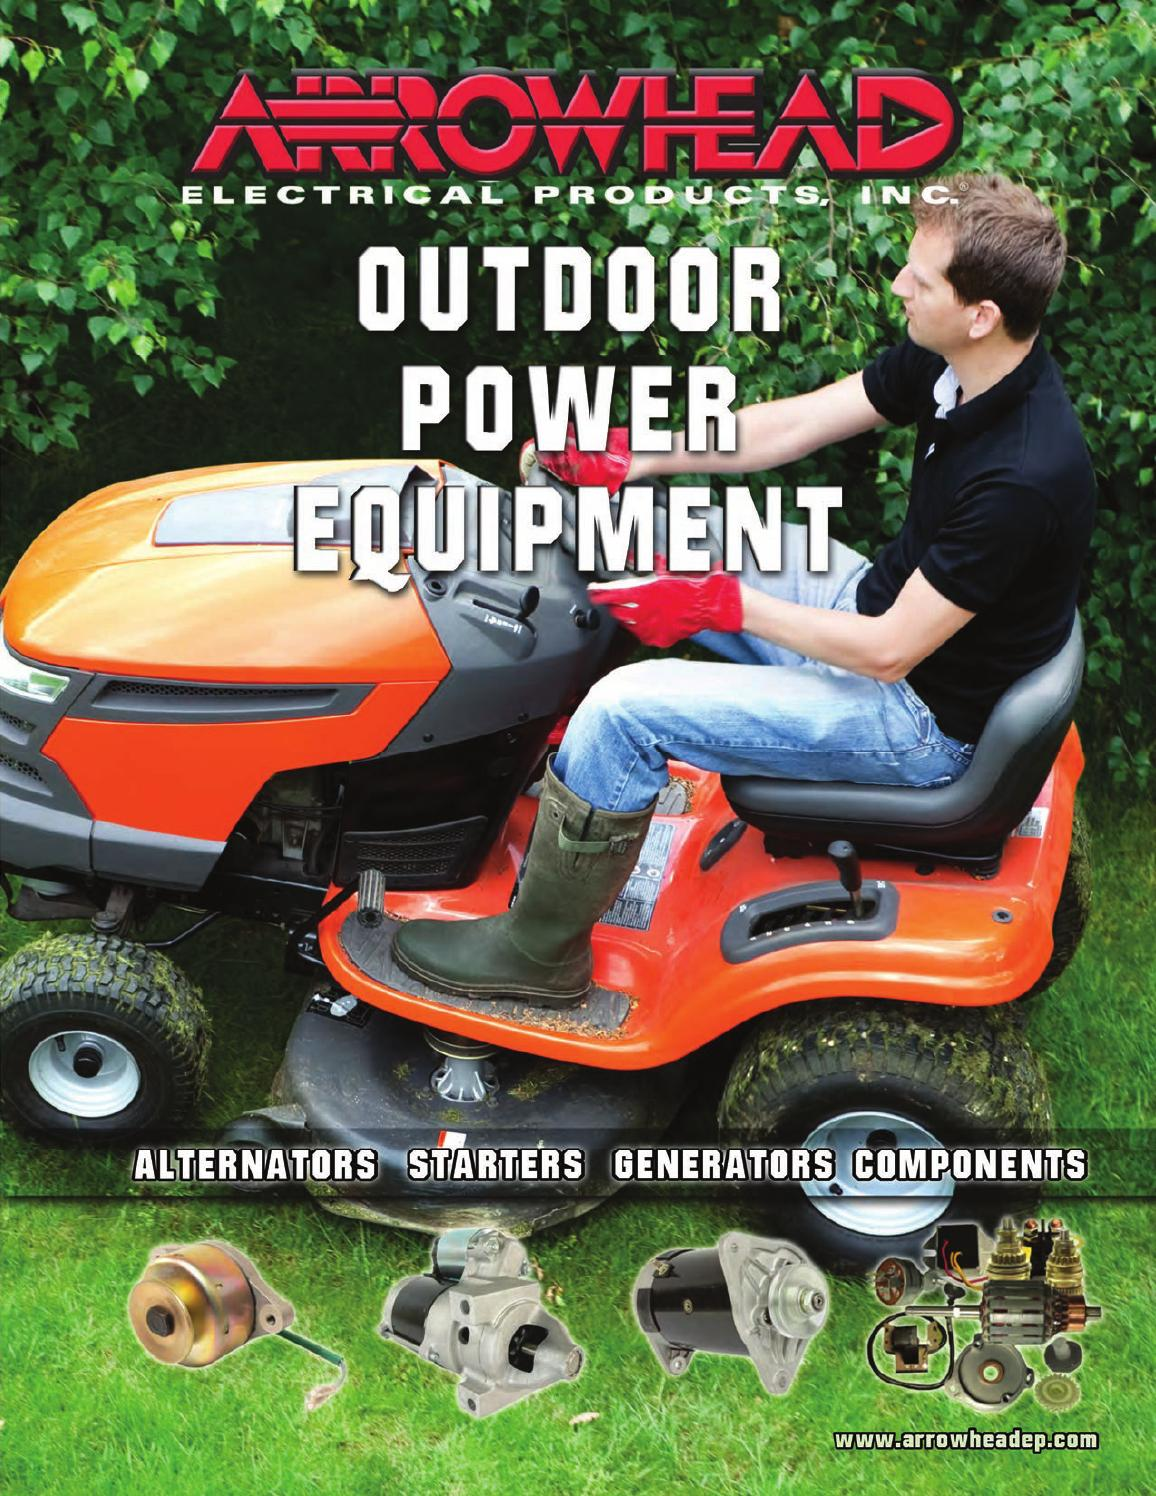 Arrowhead Electrical Products Outdoor Power Equipment Catalog 2013 Use Toggle Switch 20amp Back And Side Wired Singlepole 81200 W By Issuu